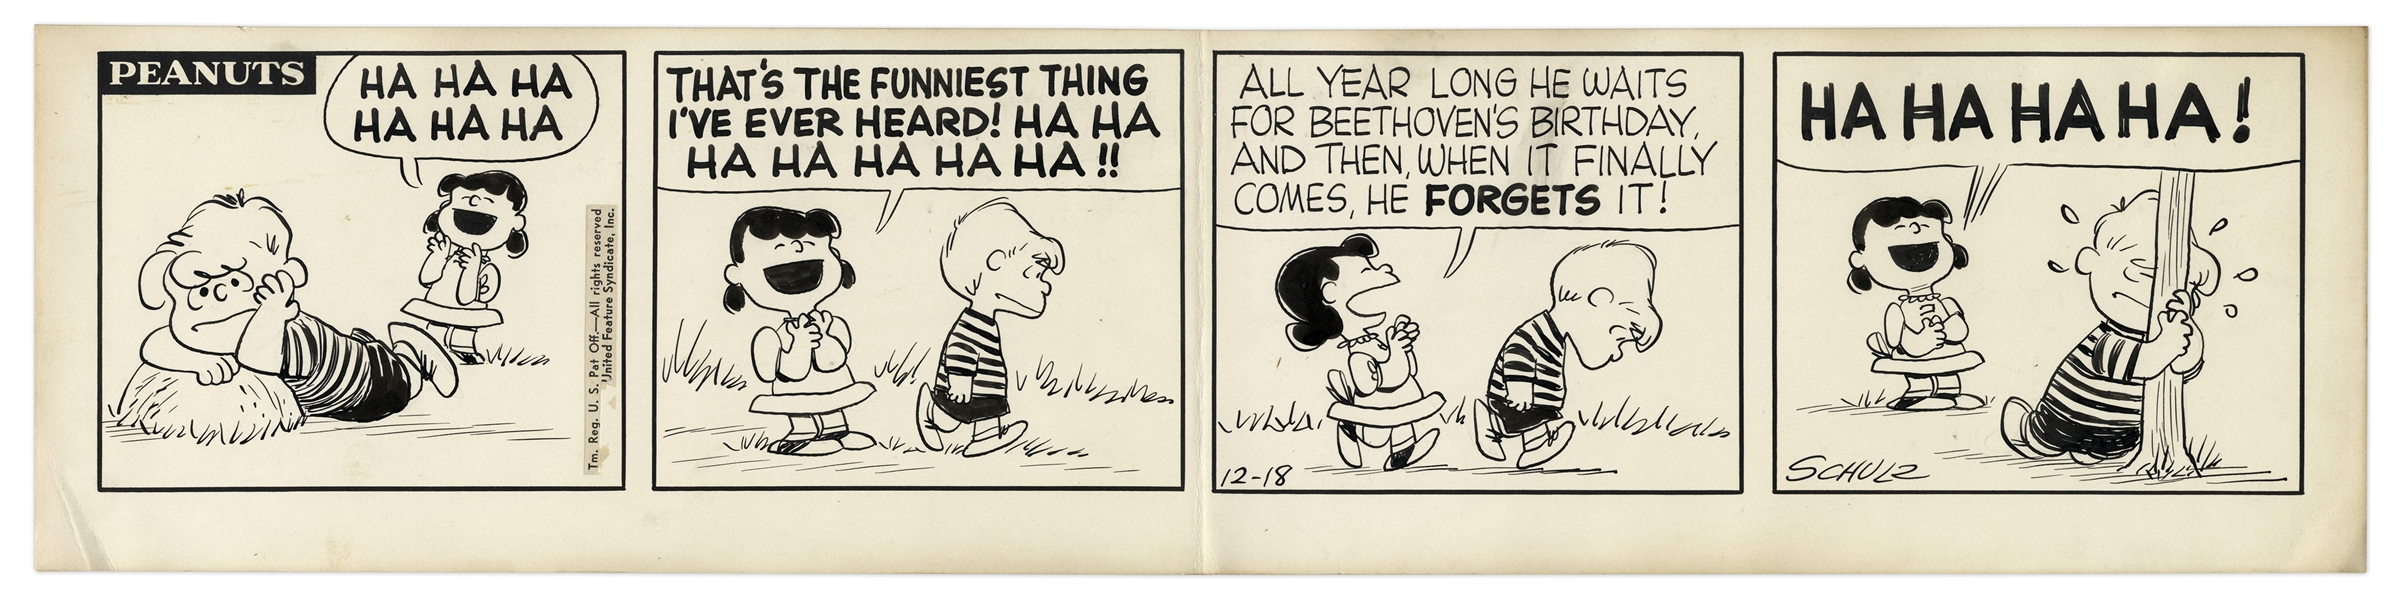 1957 ''Peanuts'' Comic Strip Hand-Drawn by Charles Schulz -- Featuring Lucy & Schroeder